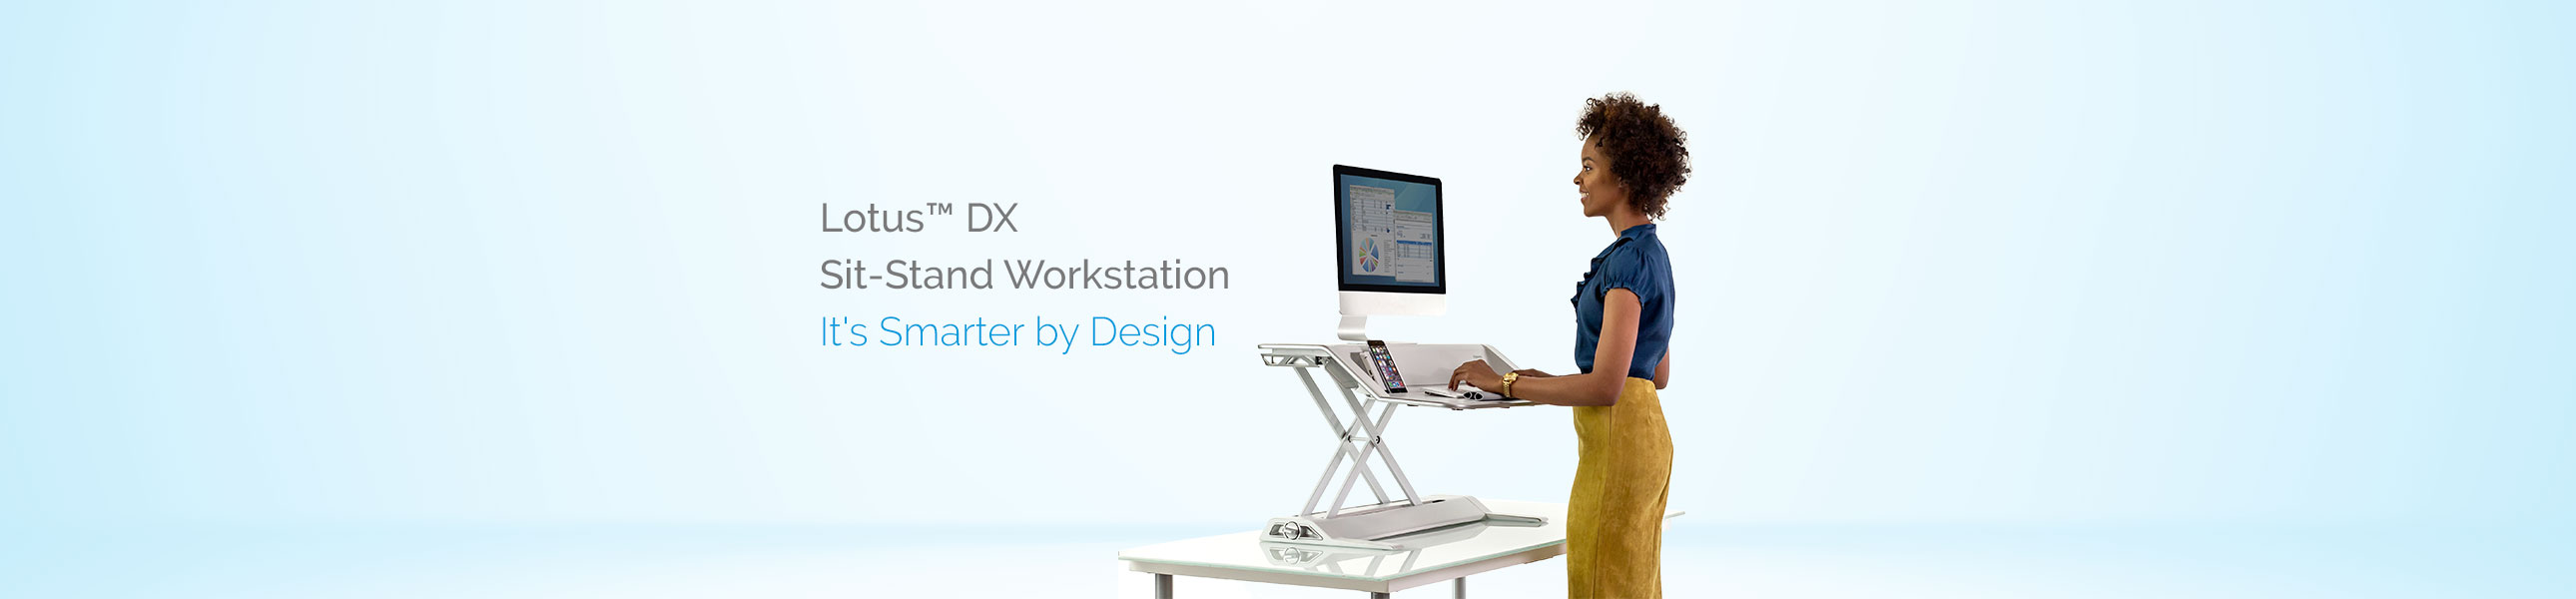 Lotus DX - Sit-Stand Workstation - It's Smarter By Design